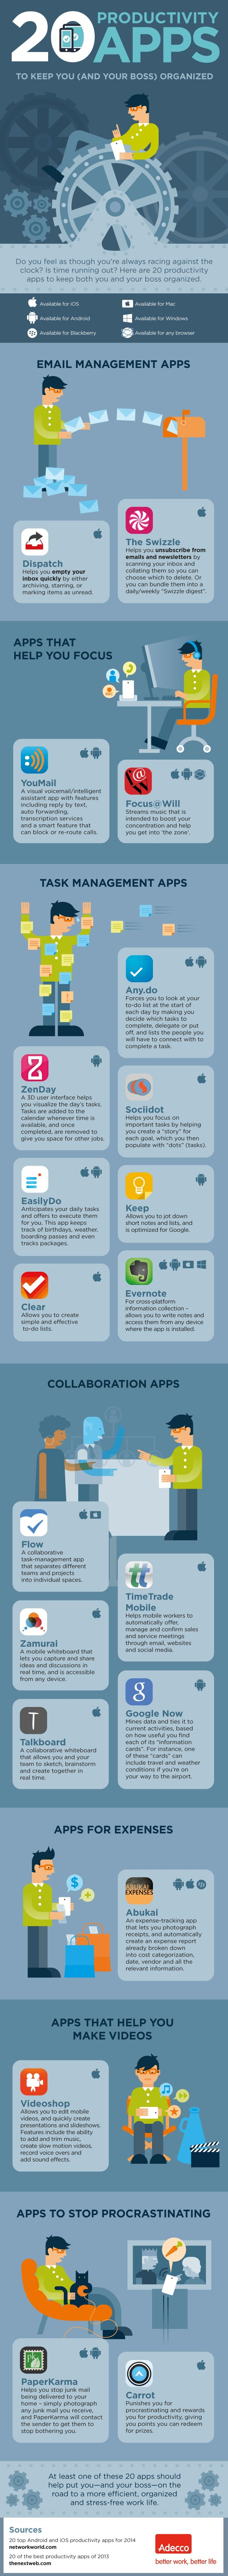 20 Productivity Apps To Keep You And Your Boss Organised productivity apps